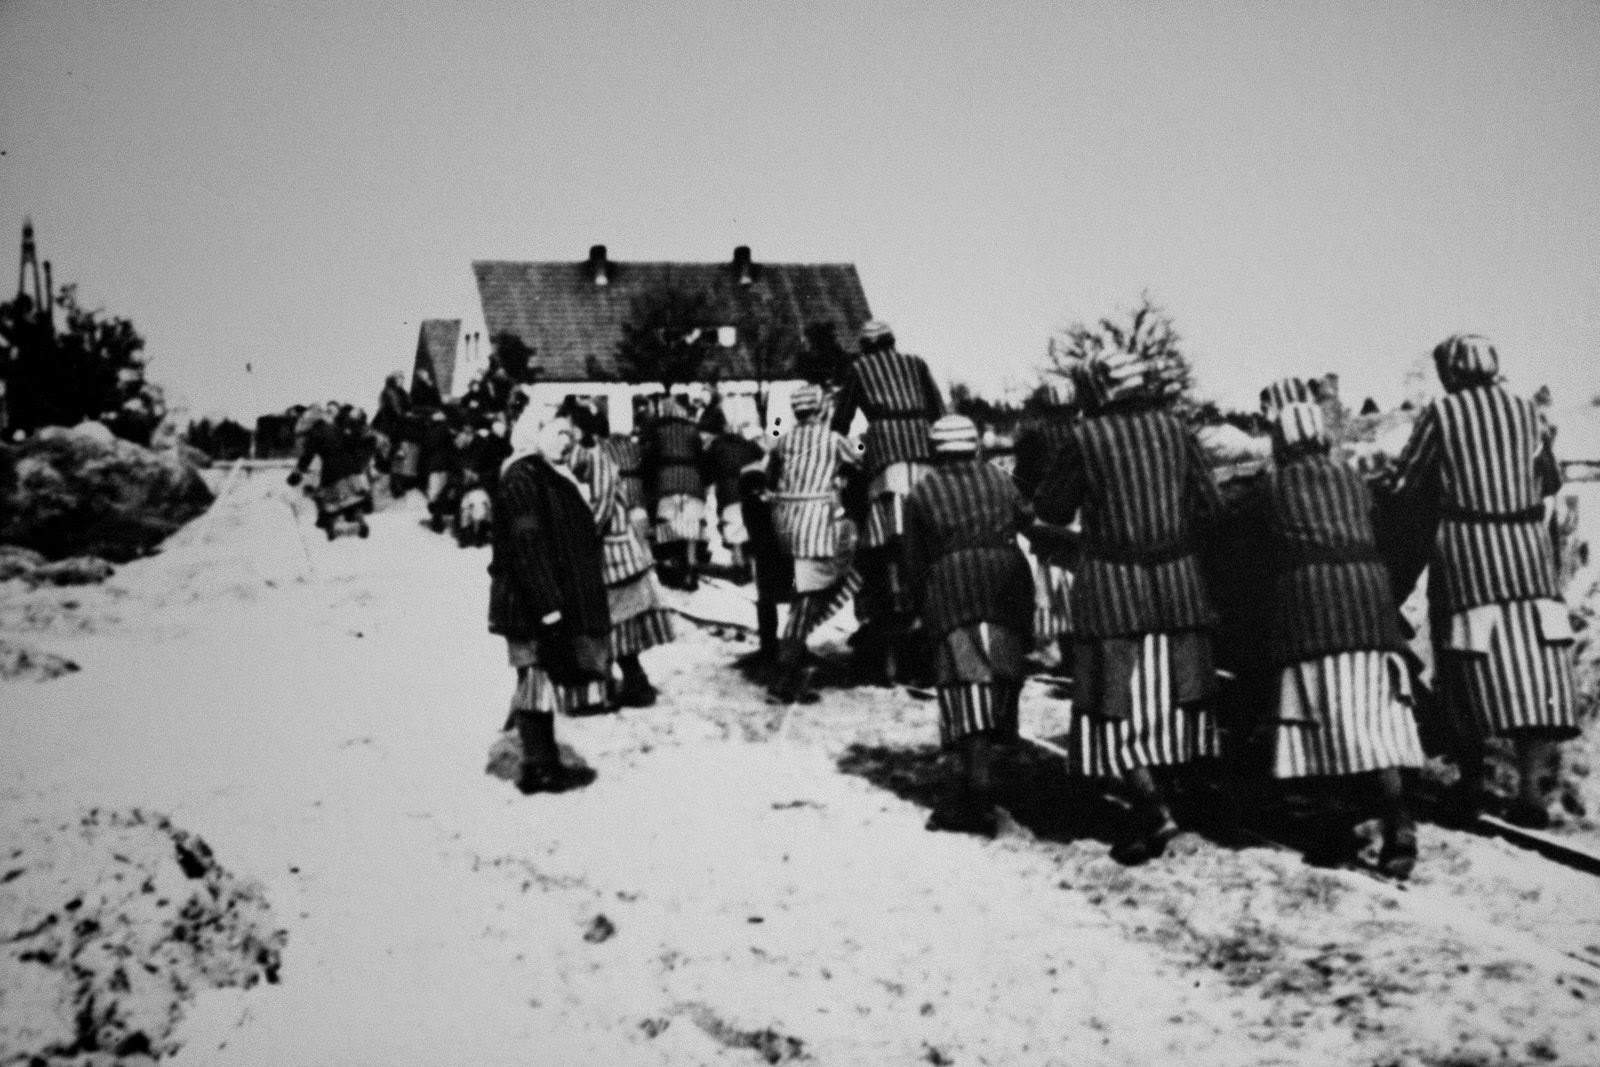 Women's concentration camp prisoners under forced labor